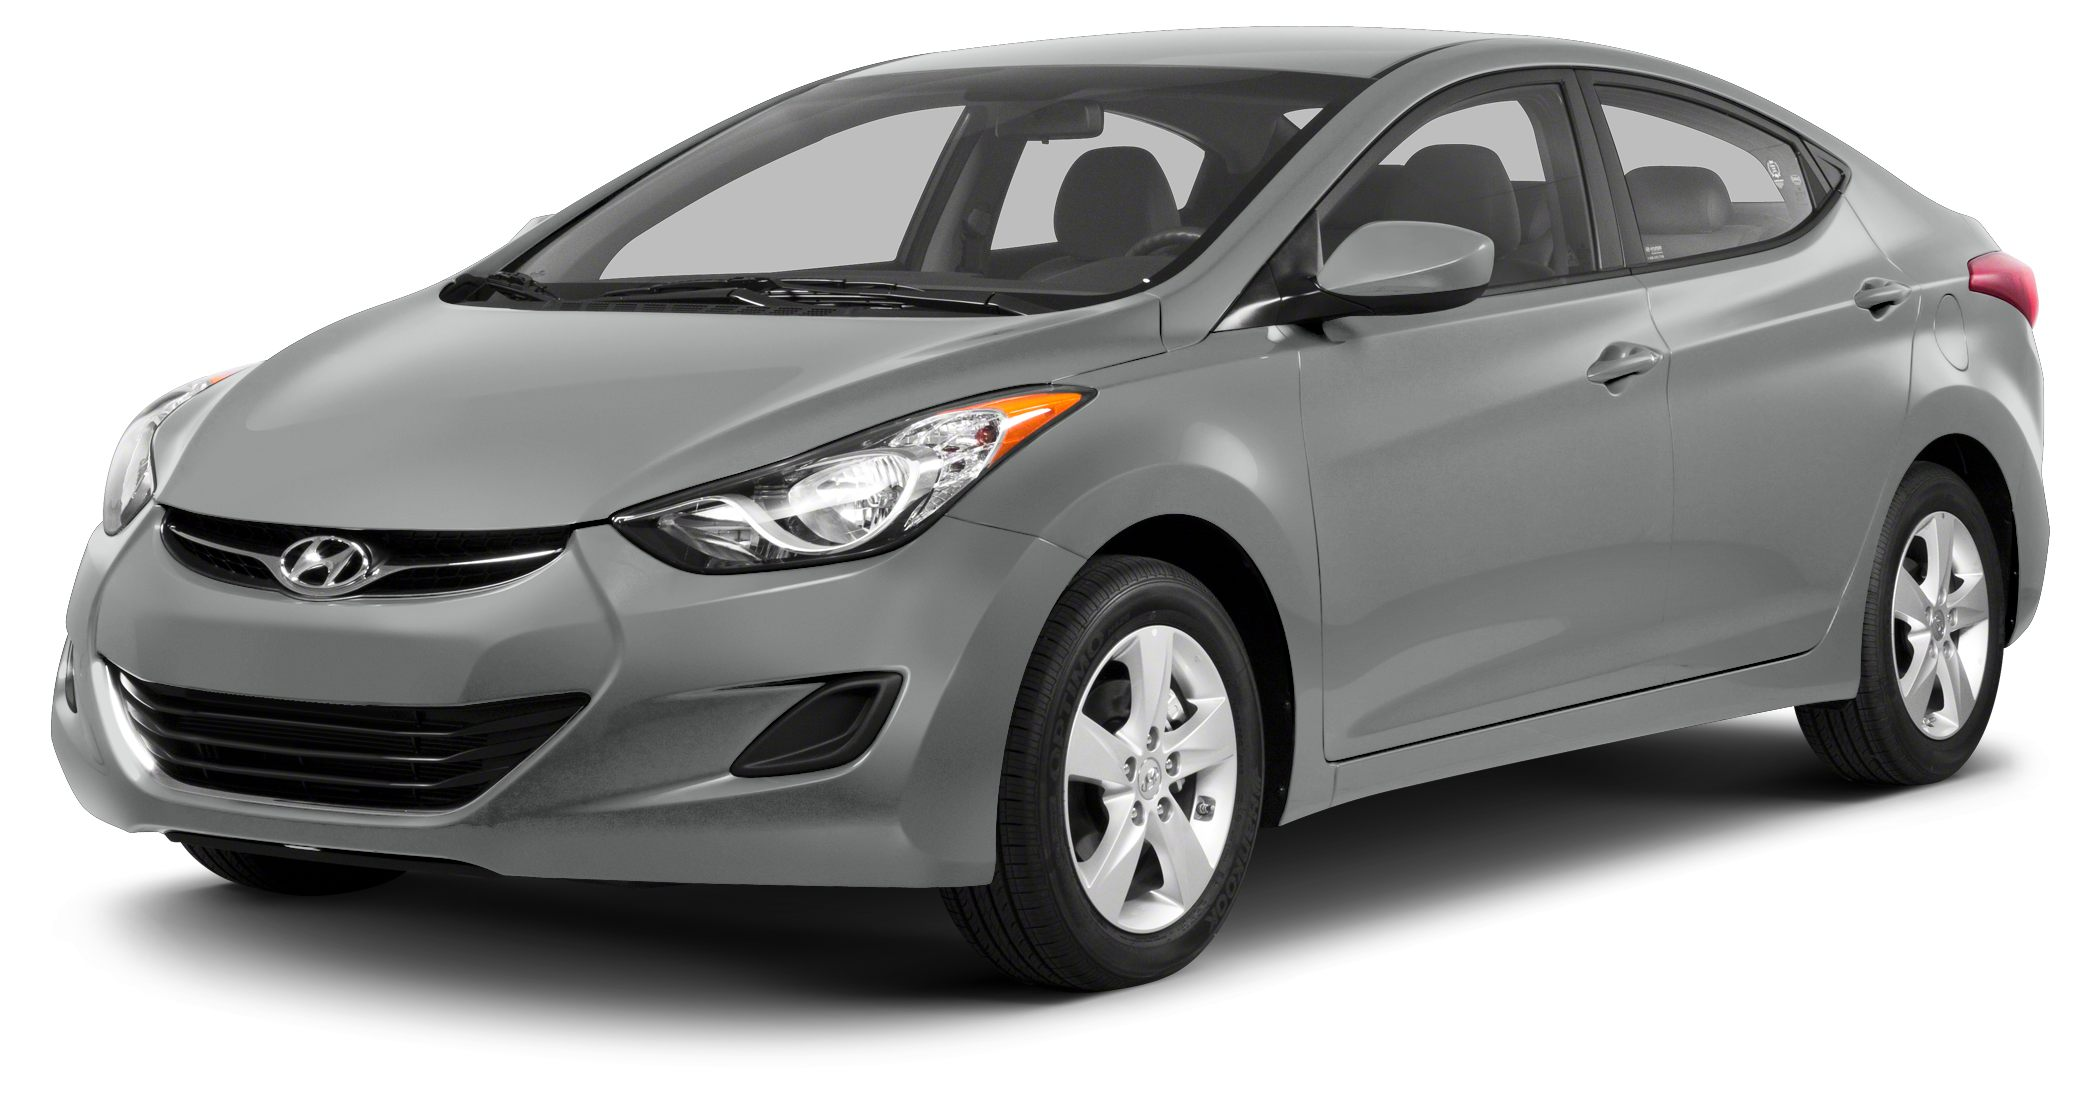 2013 Hyundai Elantra GLS Hyundai Certified --- Just 18k miles on this one owner Elantra that comes